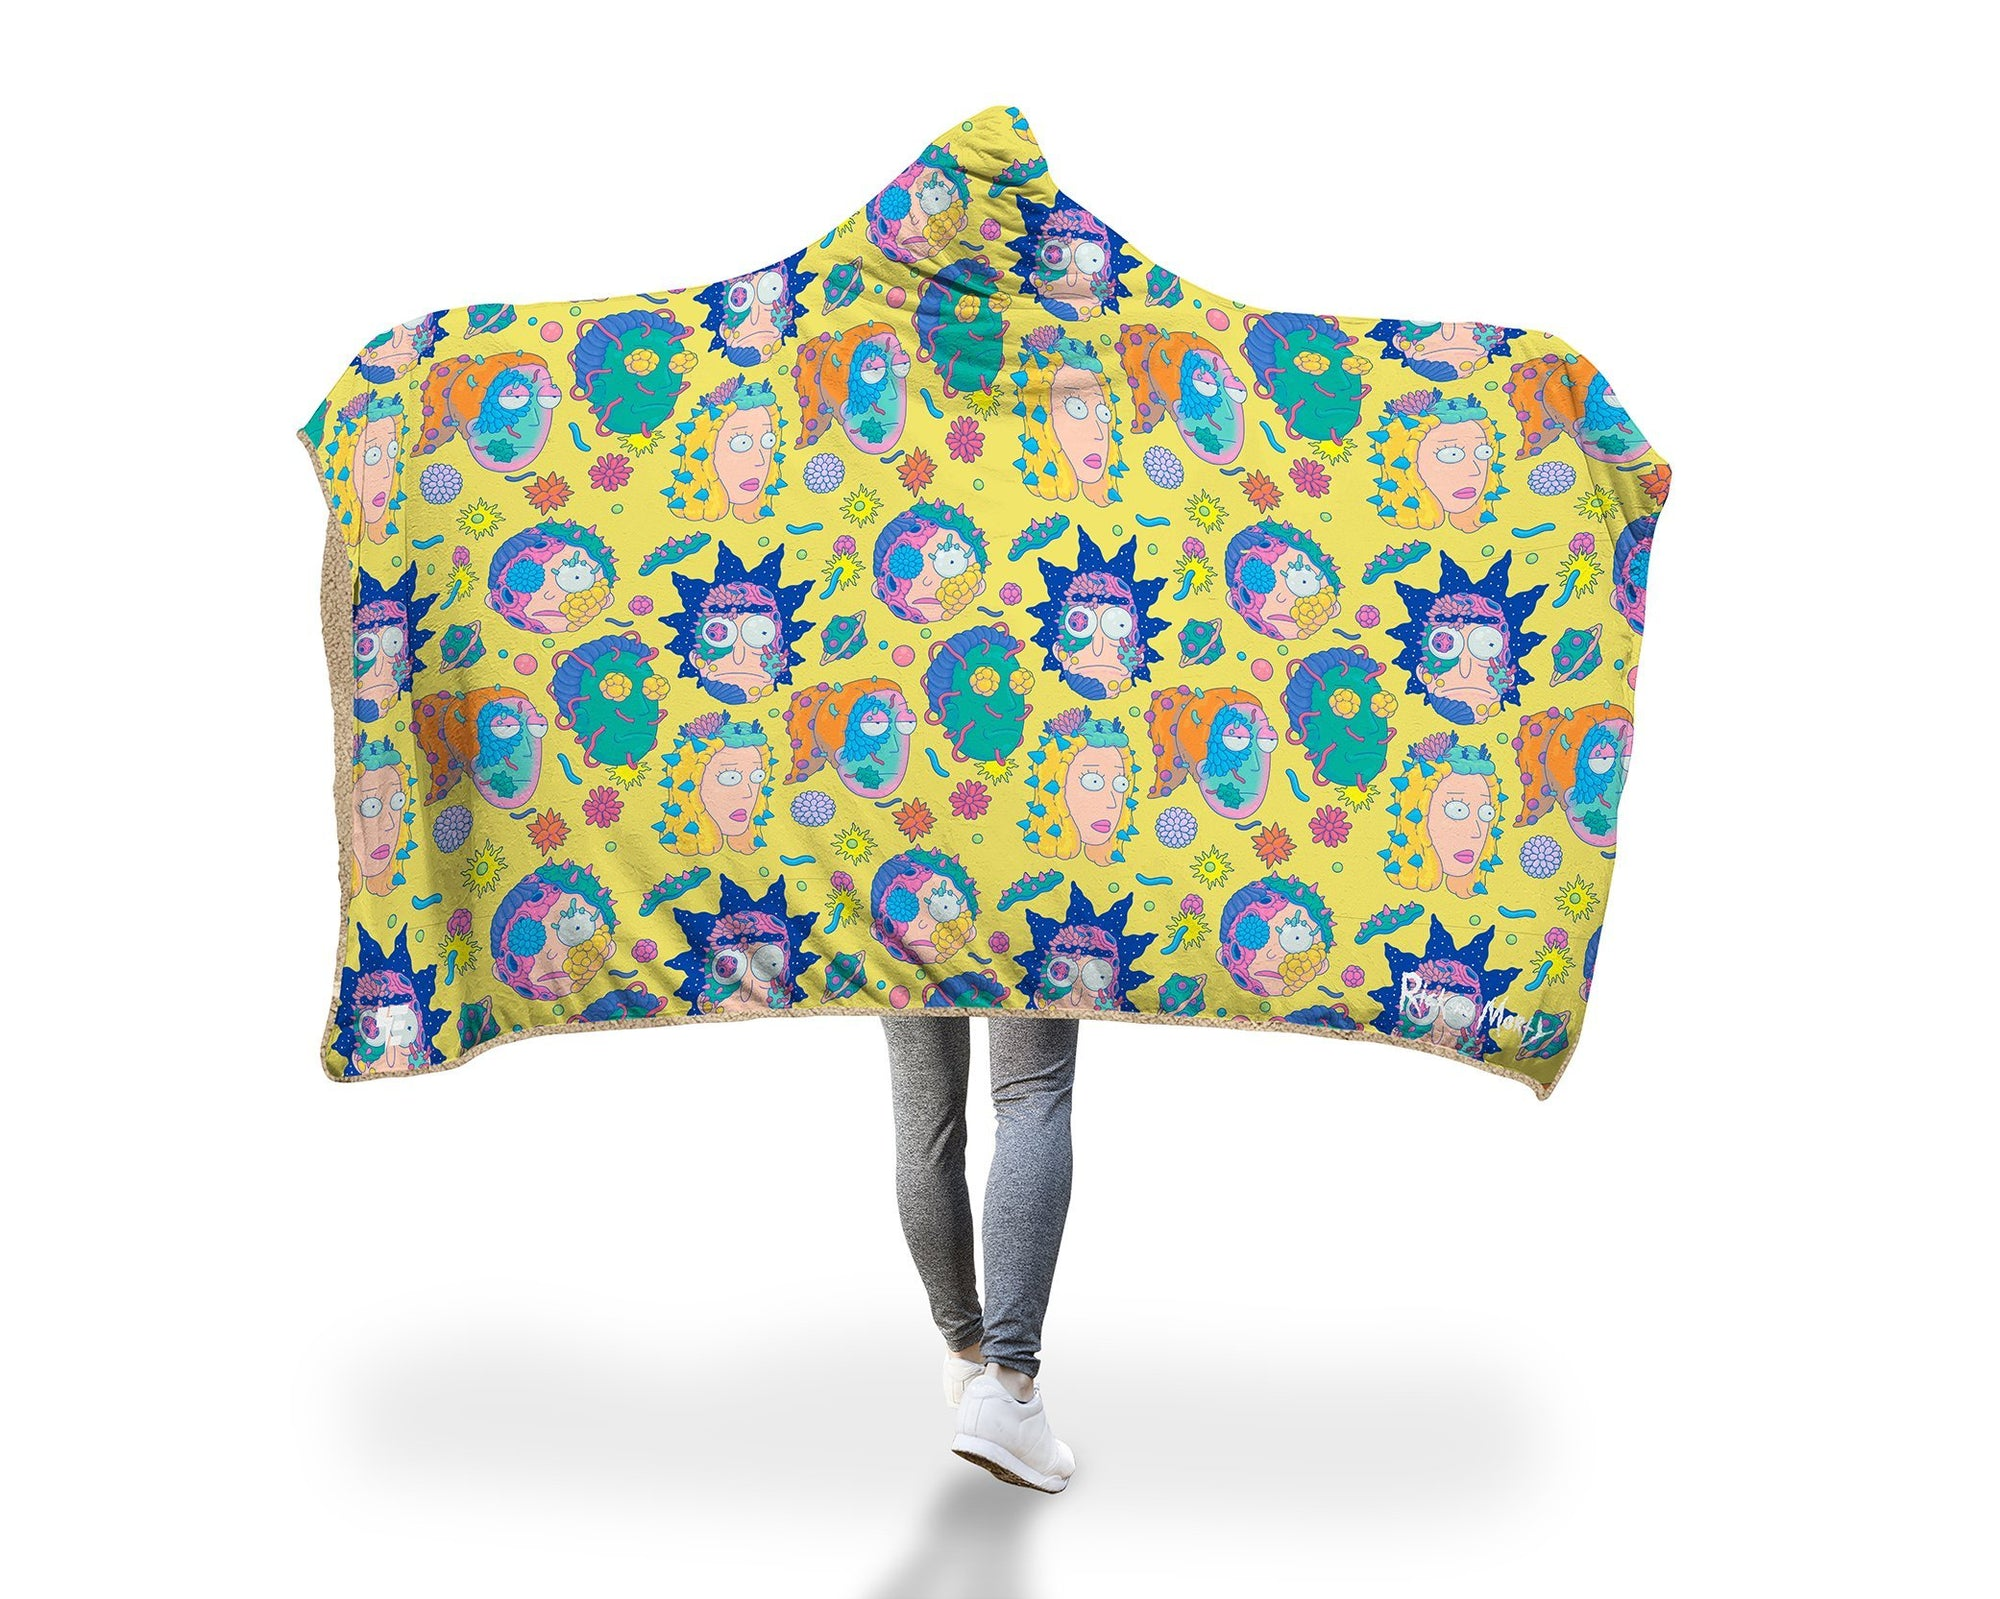 Infected Smith Family Hooded Blanket Hooded Blanket Electro Threads